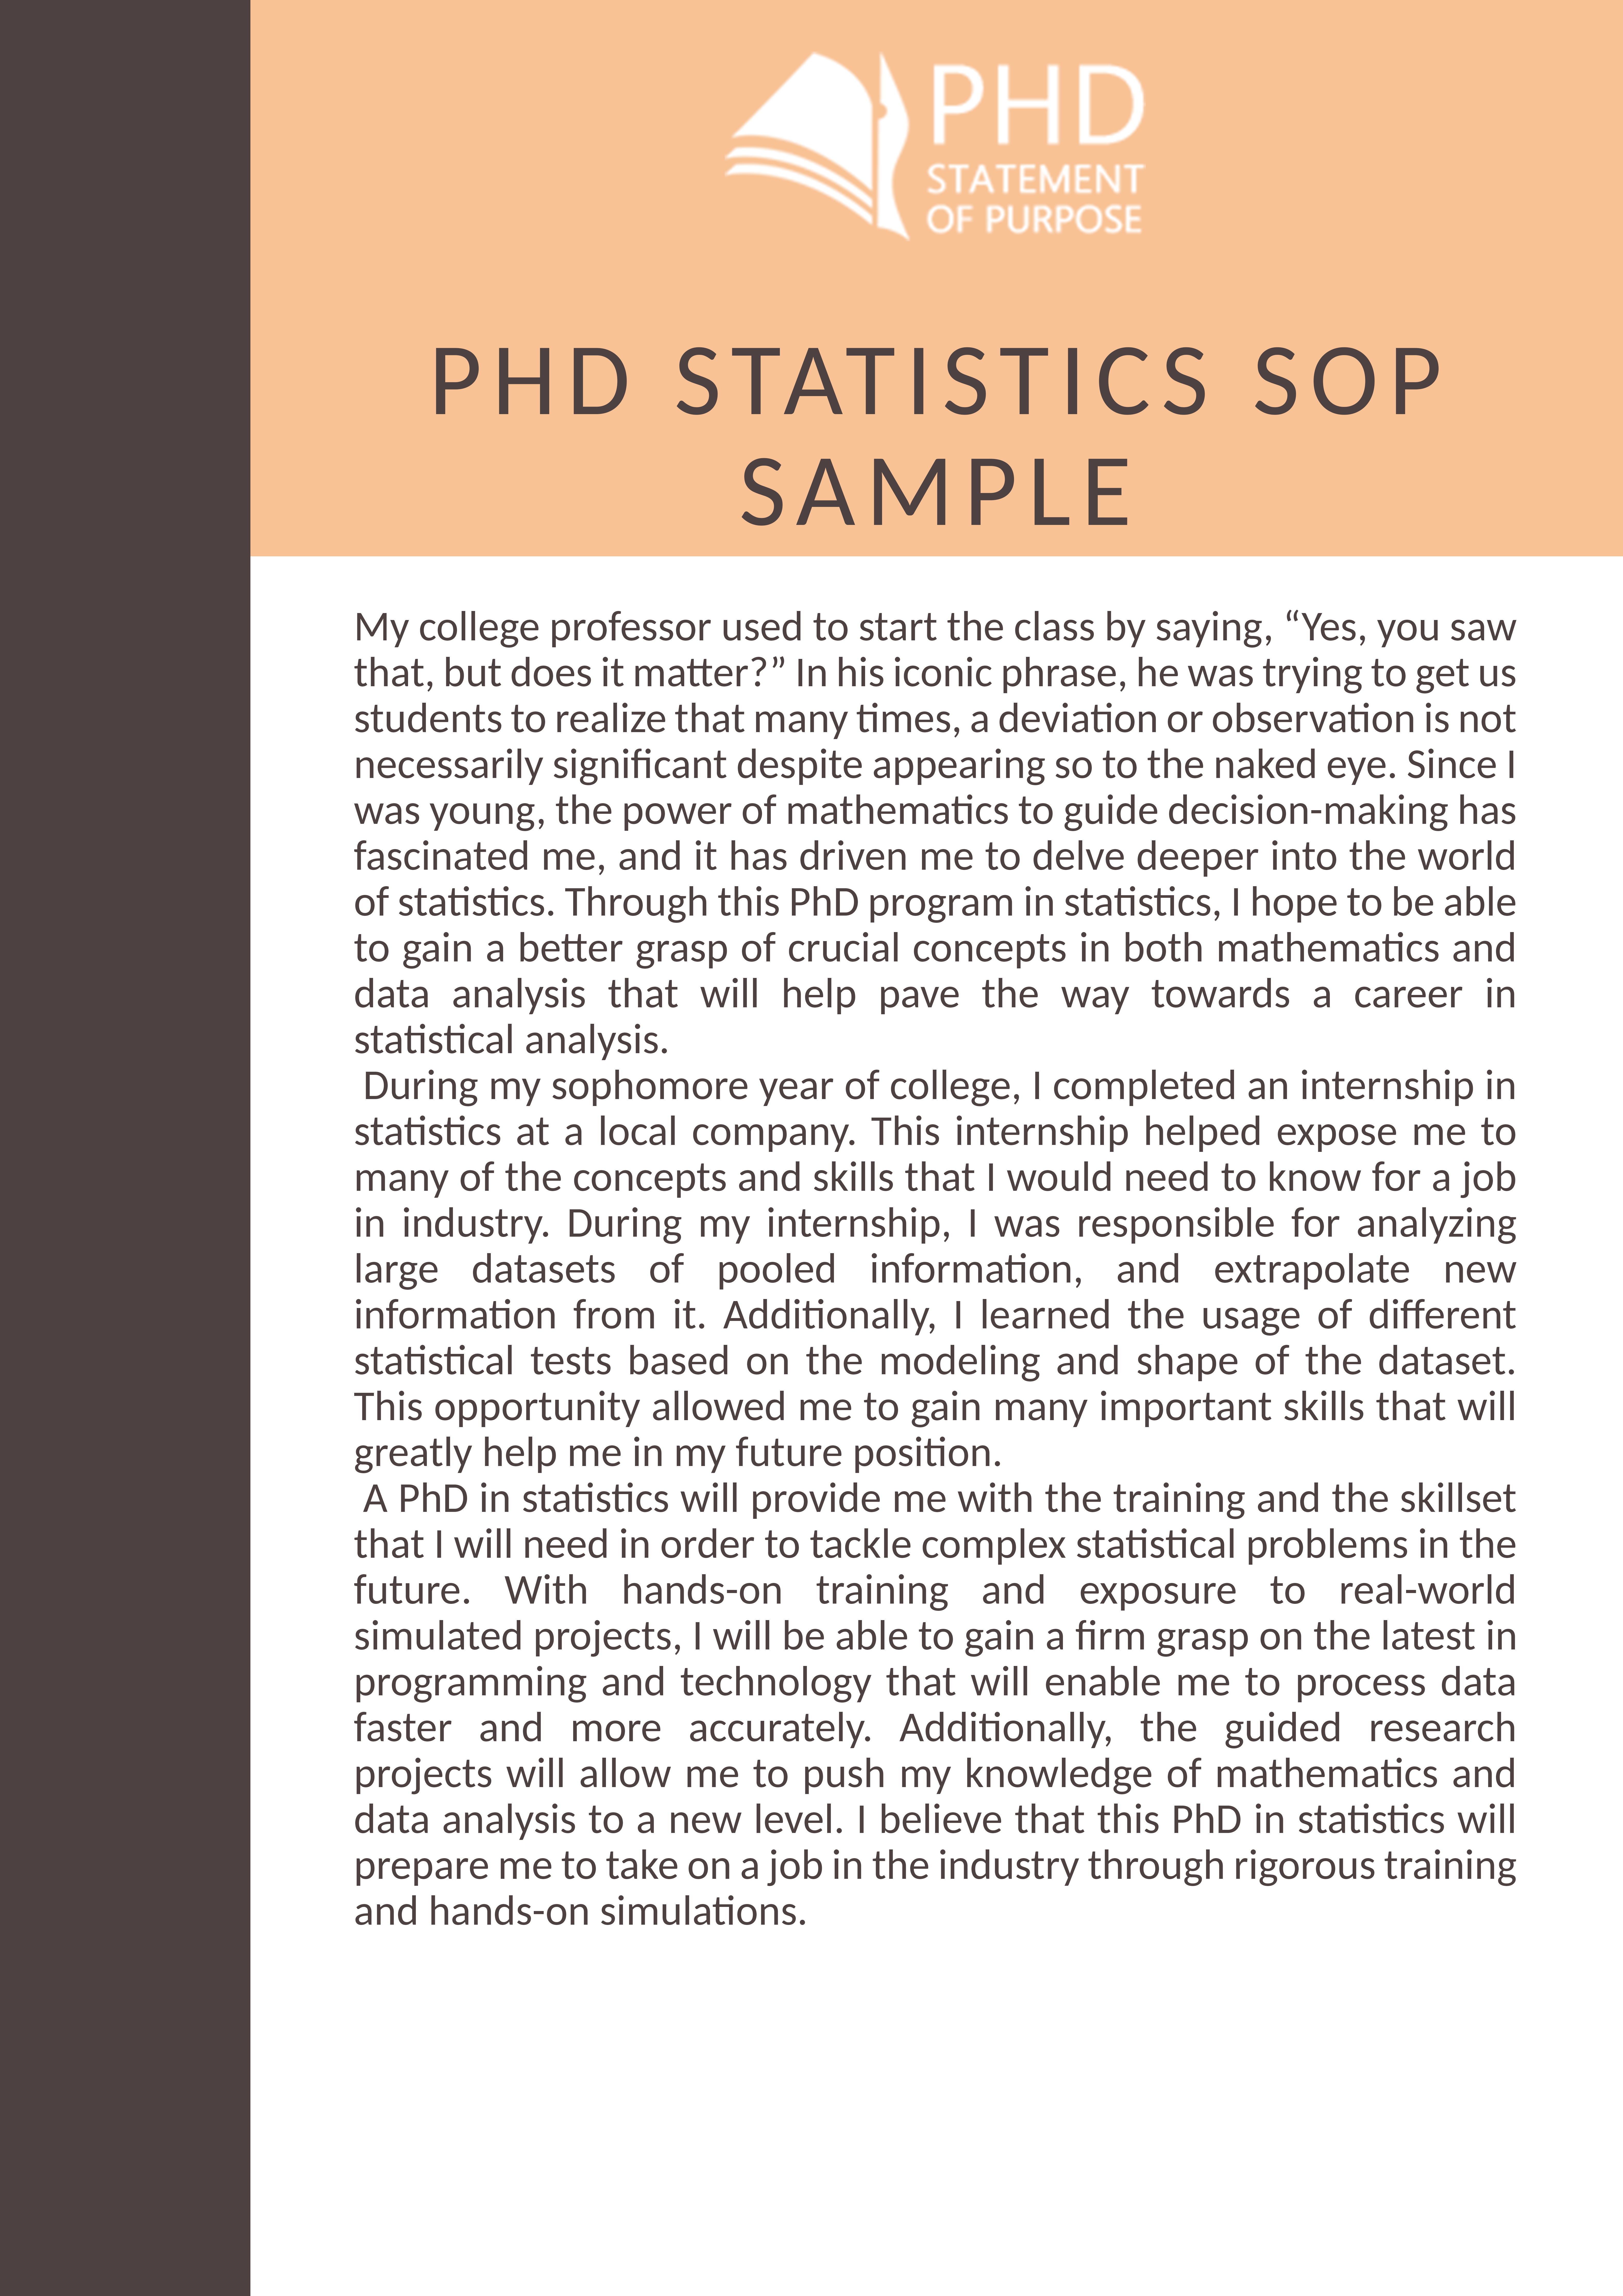 How to write sop for phd